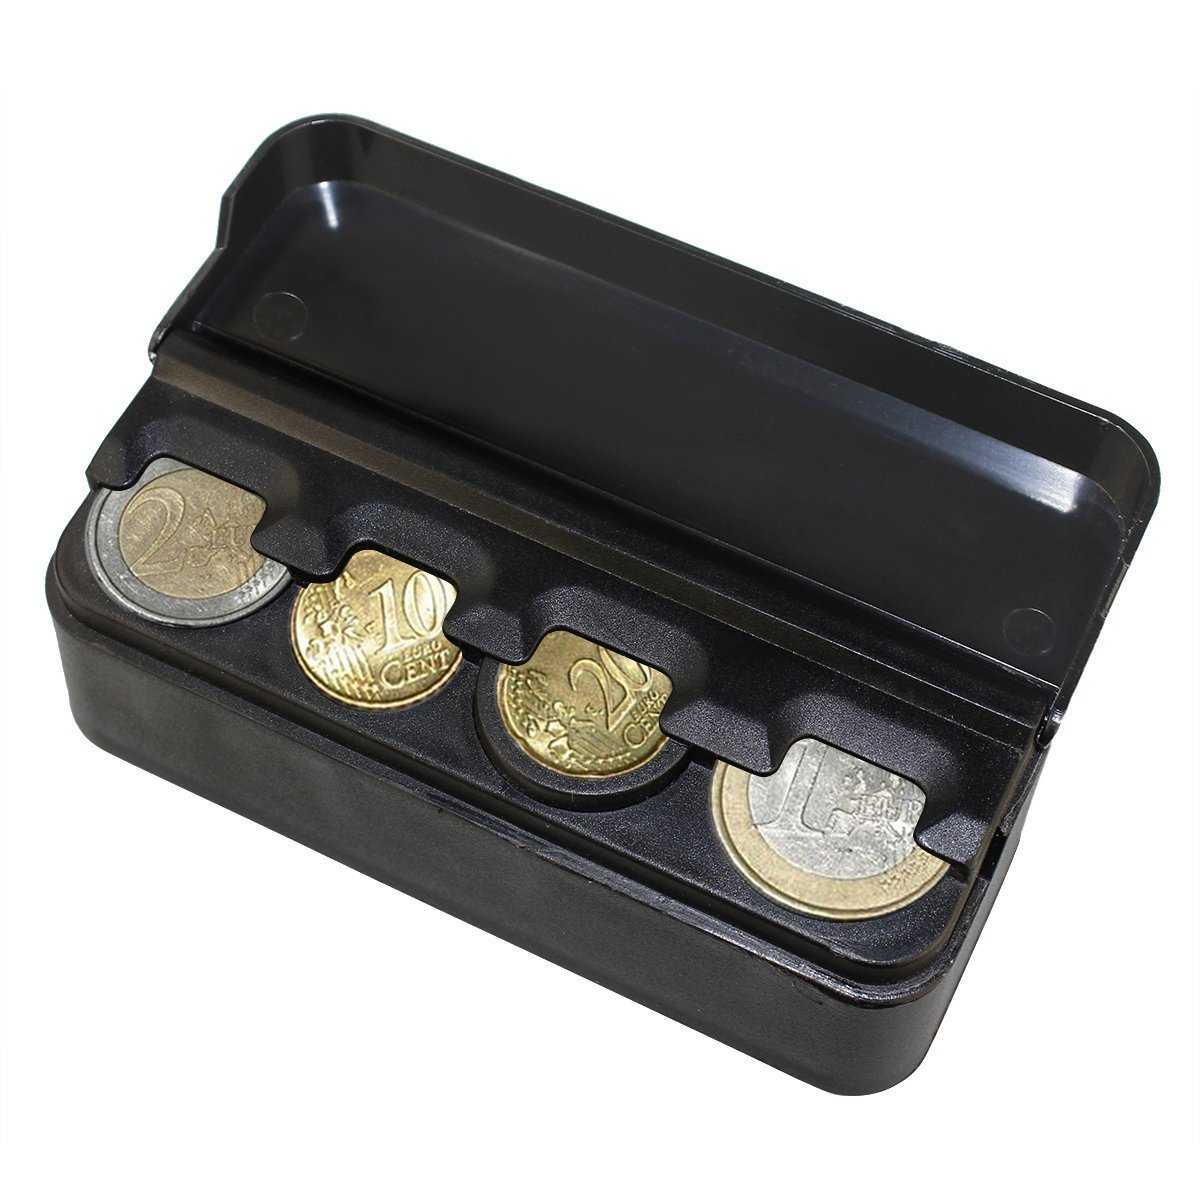 Gemini_mall® Auto Car Portable Plastic Coin Holder Change Storage Box Case Container Coin Organiser